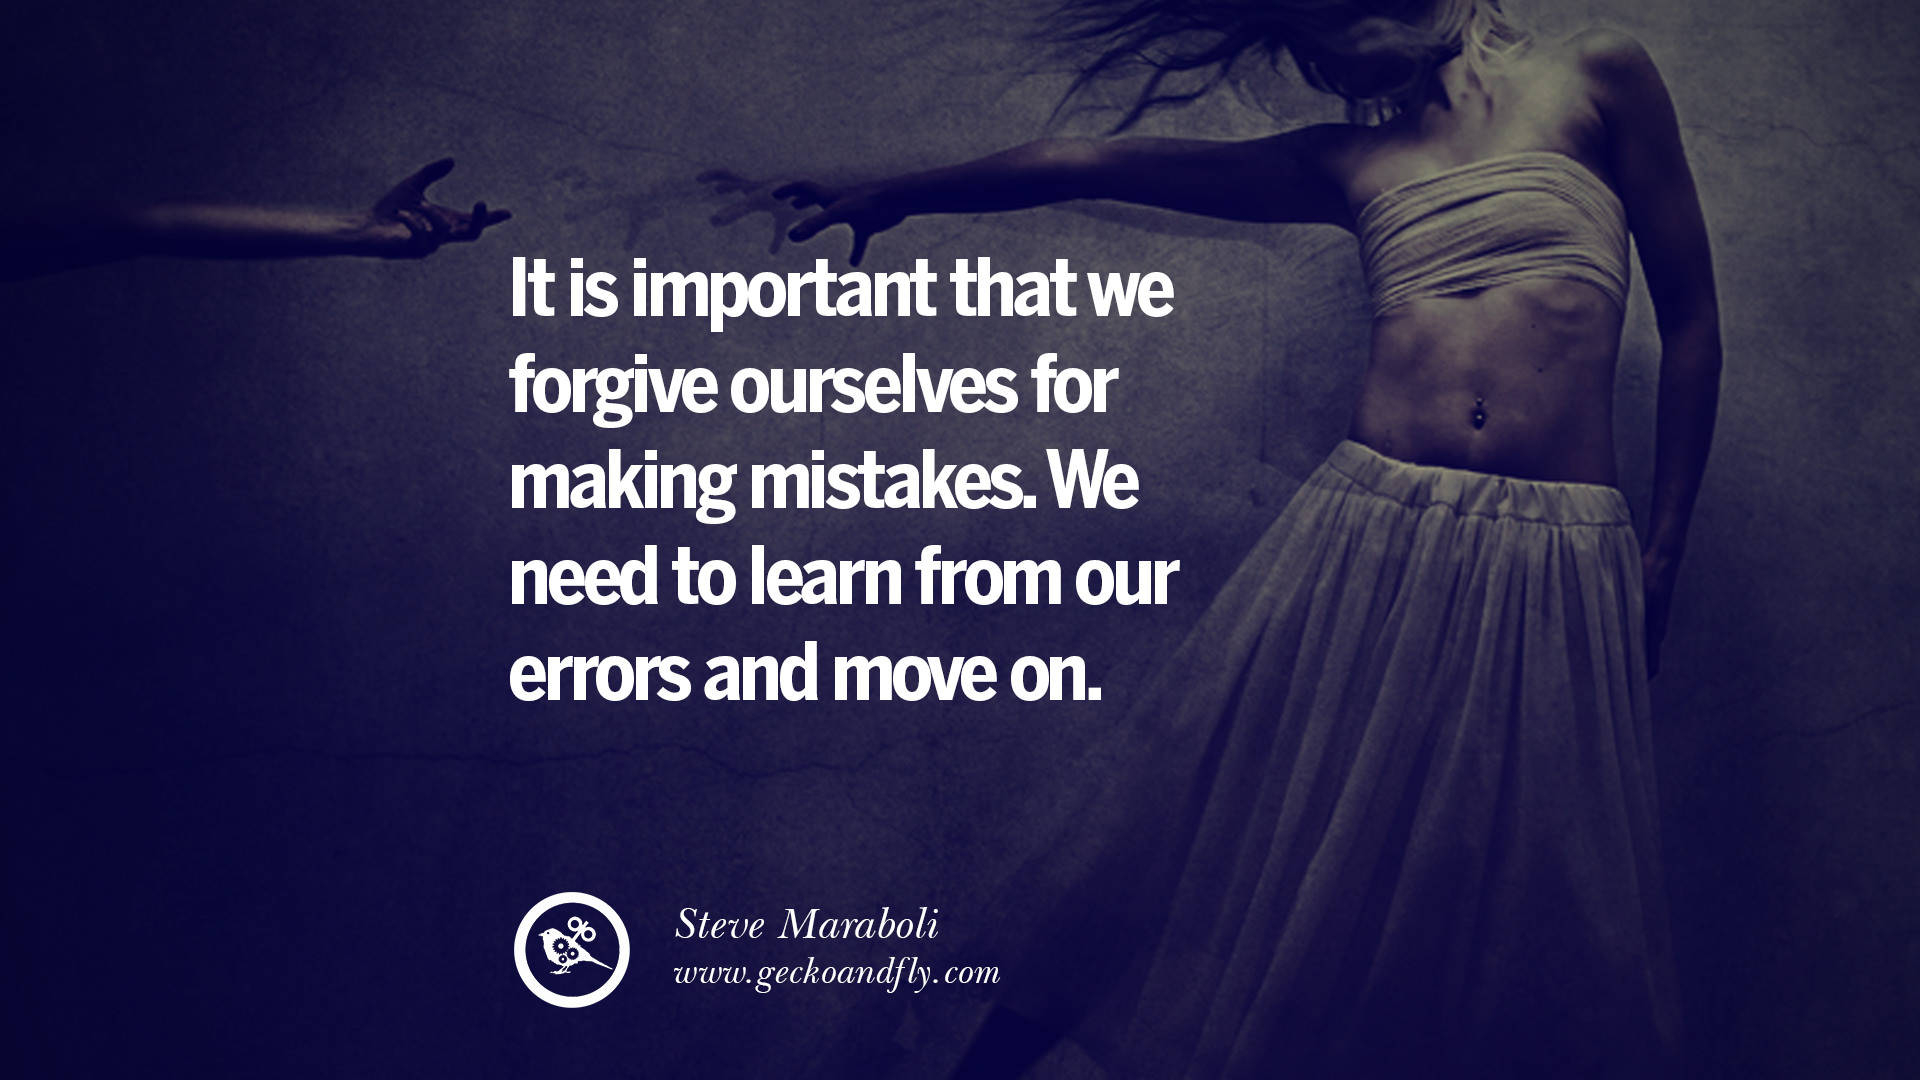 moving on quotes for girls 3 tumblr It is important that we forgive ourselves for making mistakes we need to learn from